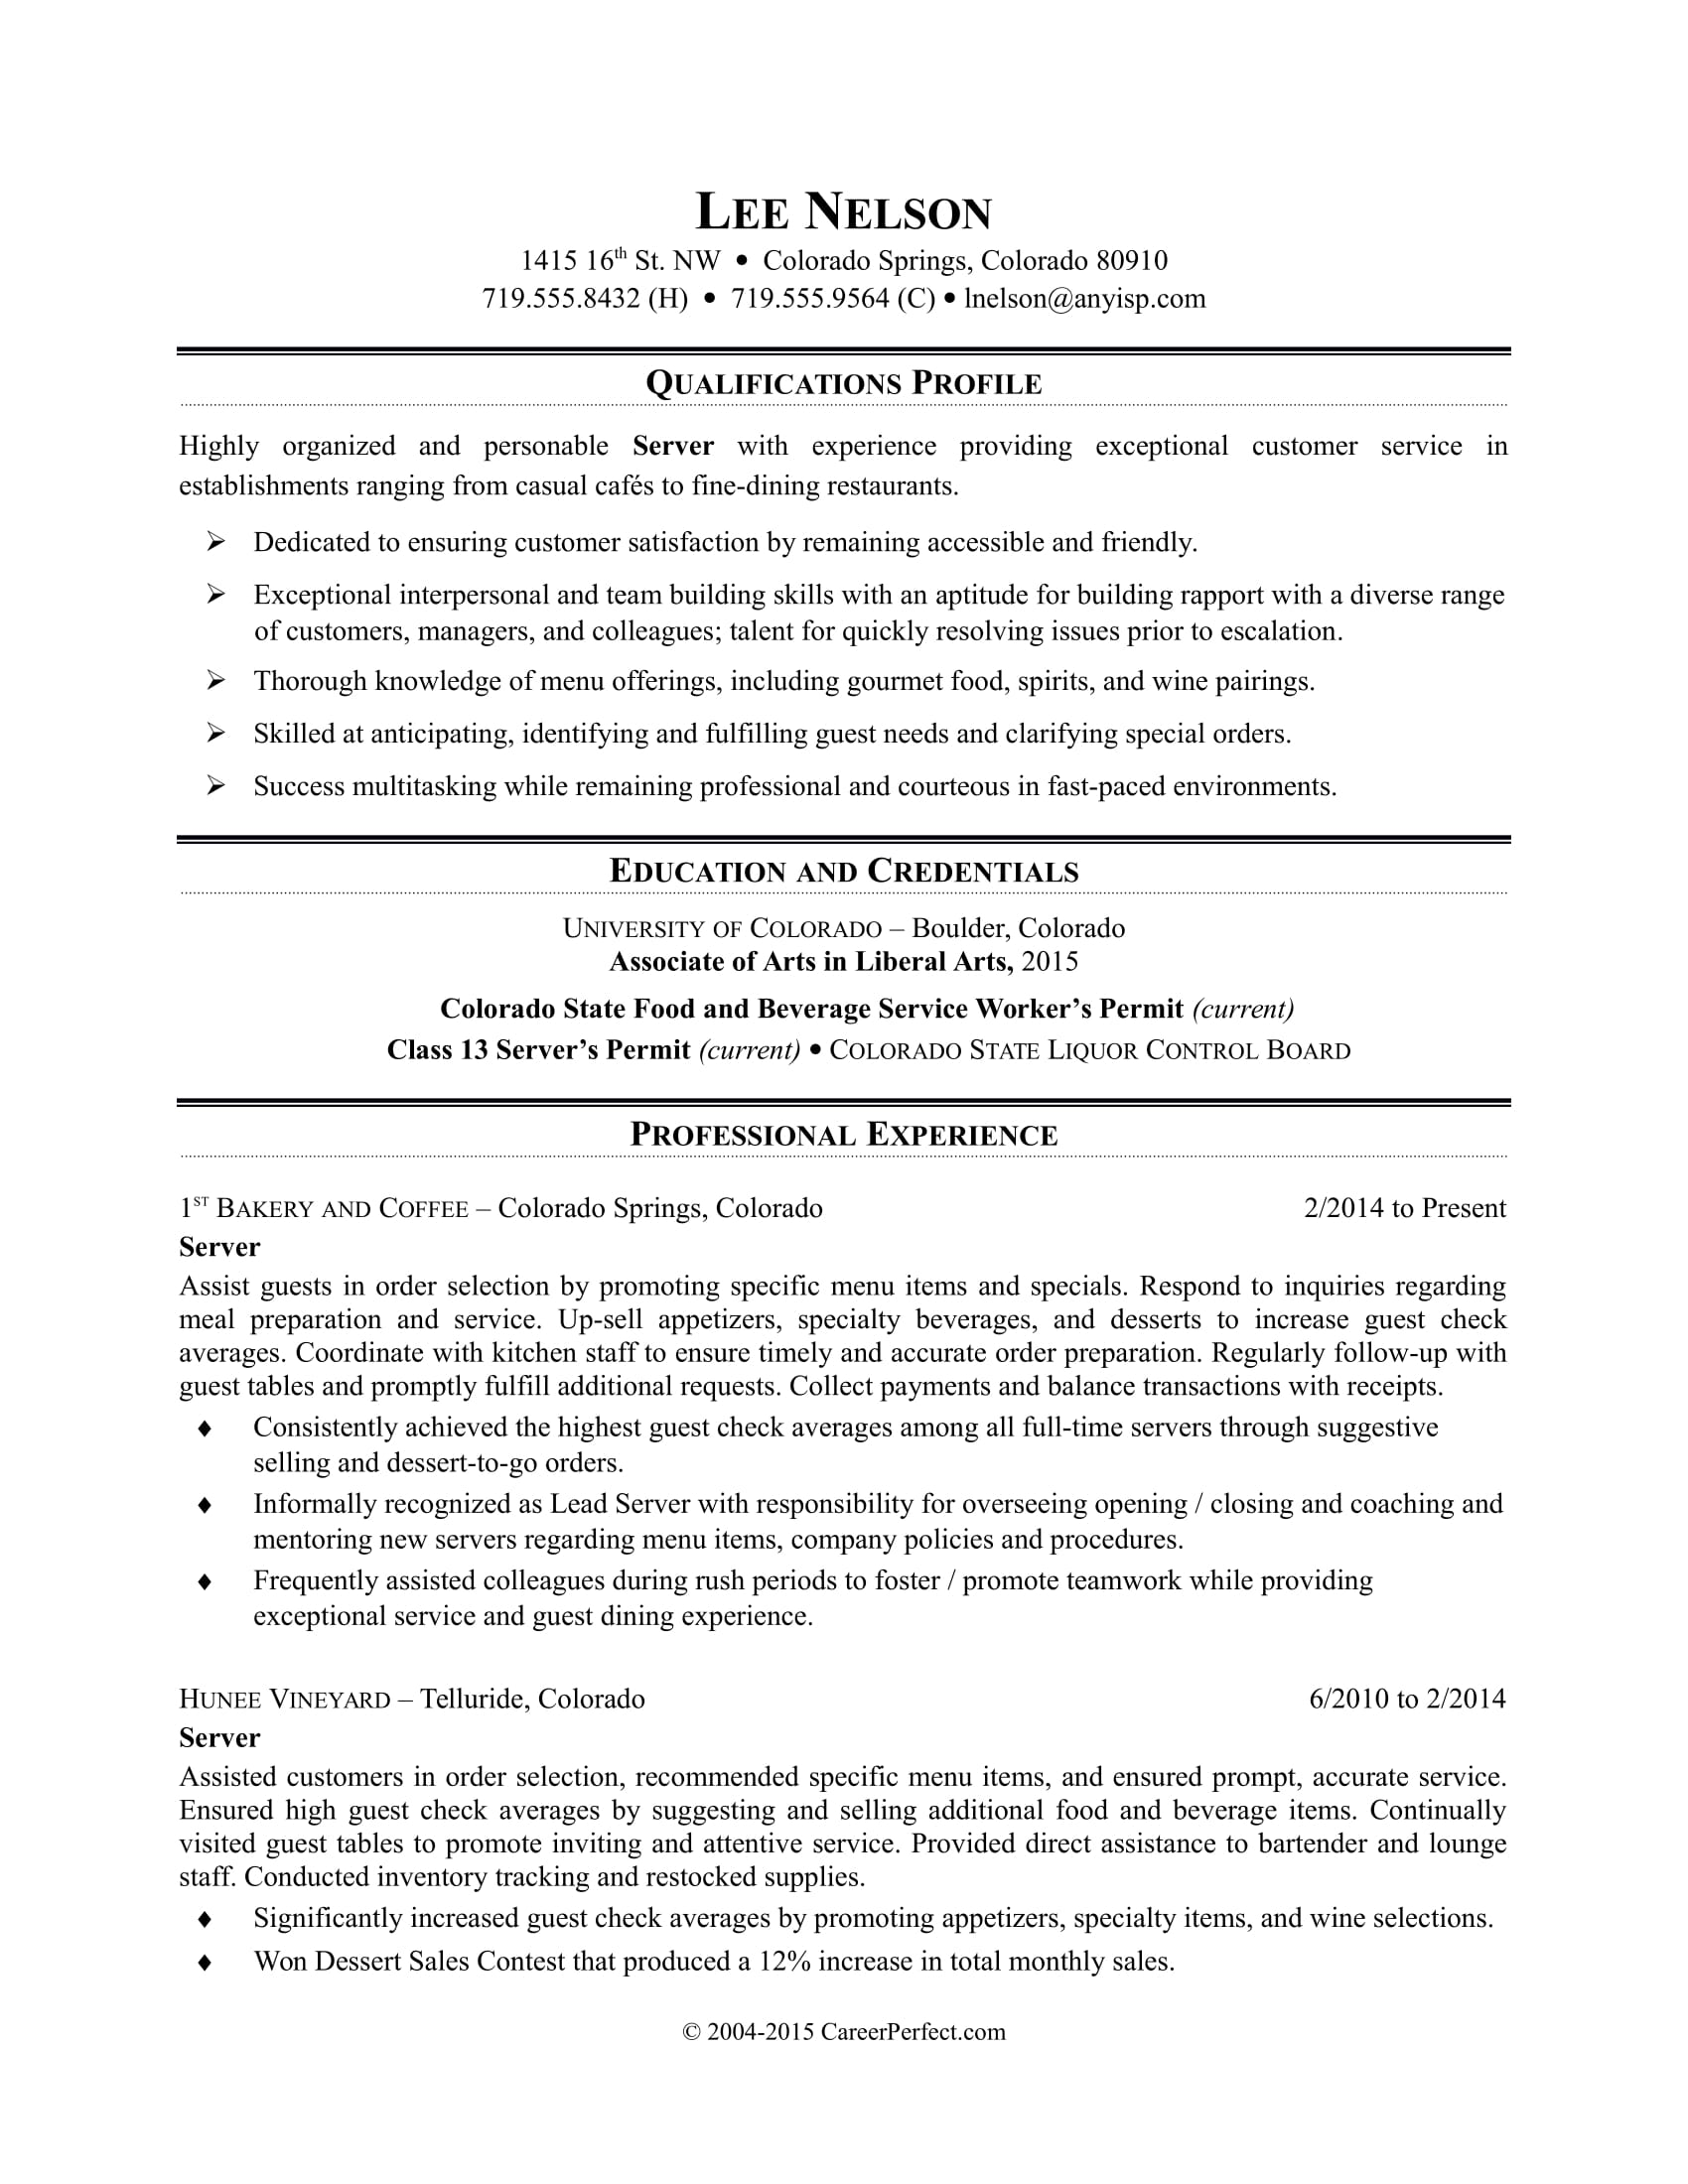 sample resume for a restaurant server - Resumes For Servers